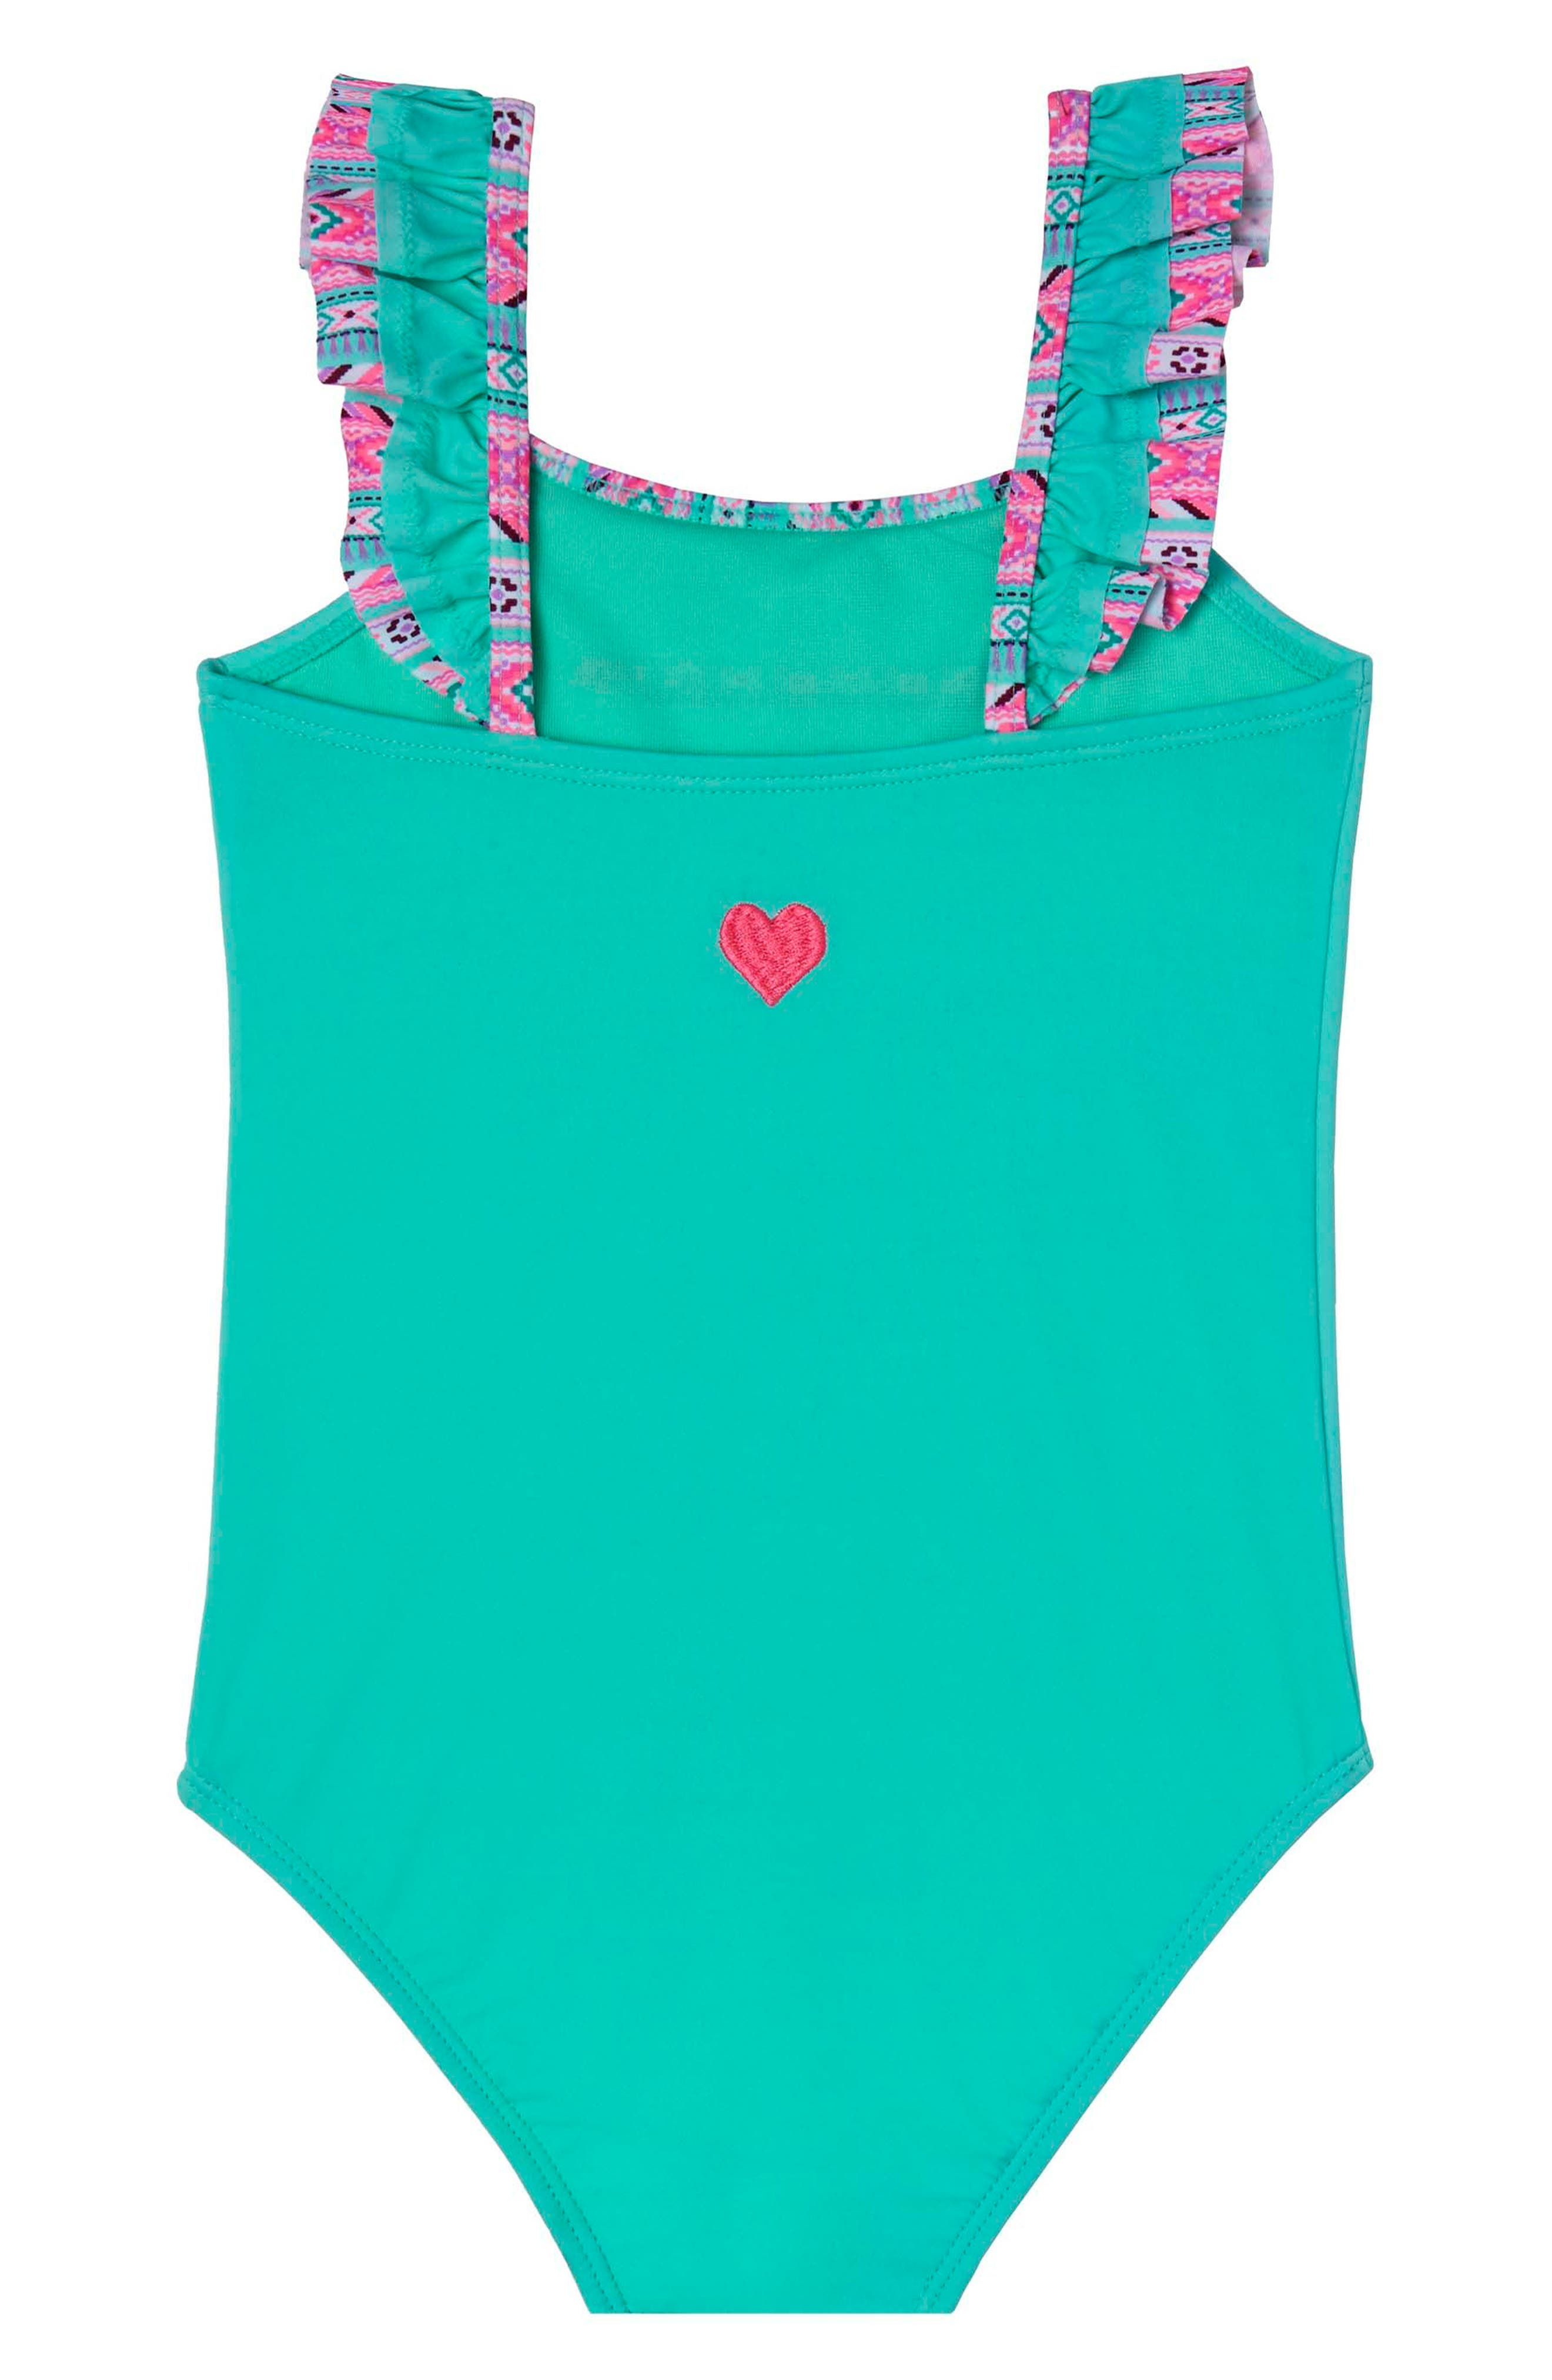 BFF One-Piece Swimsuit,                             Main thumbnail 1, color,                             304